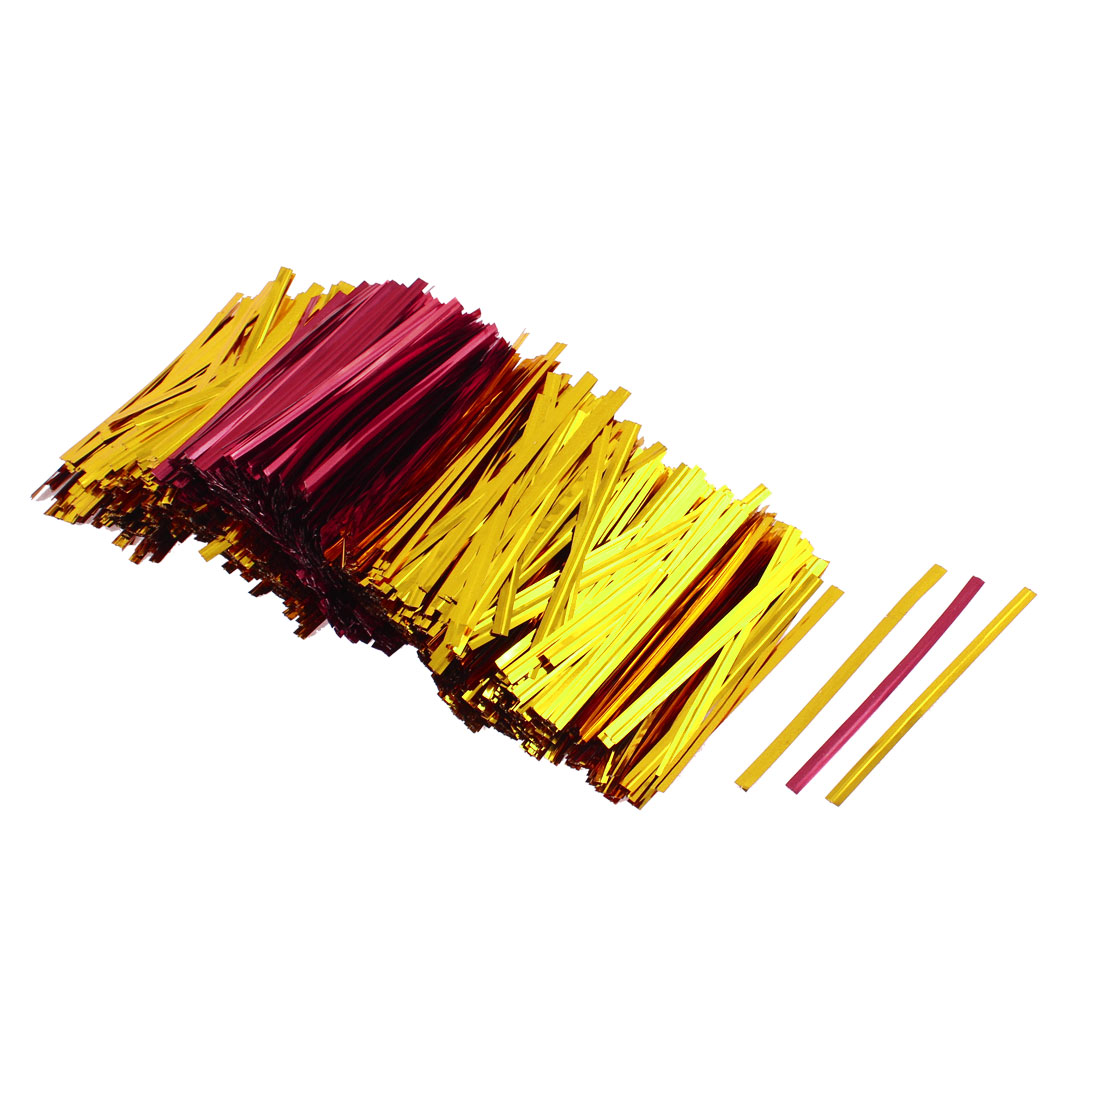 Candy Gift Bags Packaging Twist Ties Gold Tone Burgundy 2400PCS